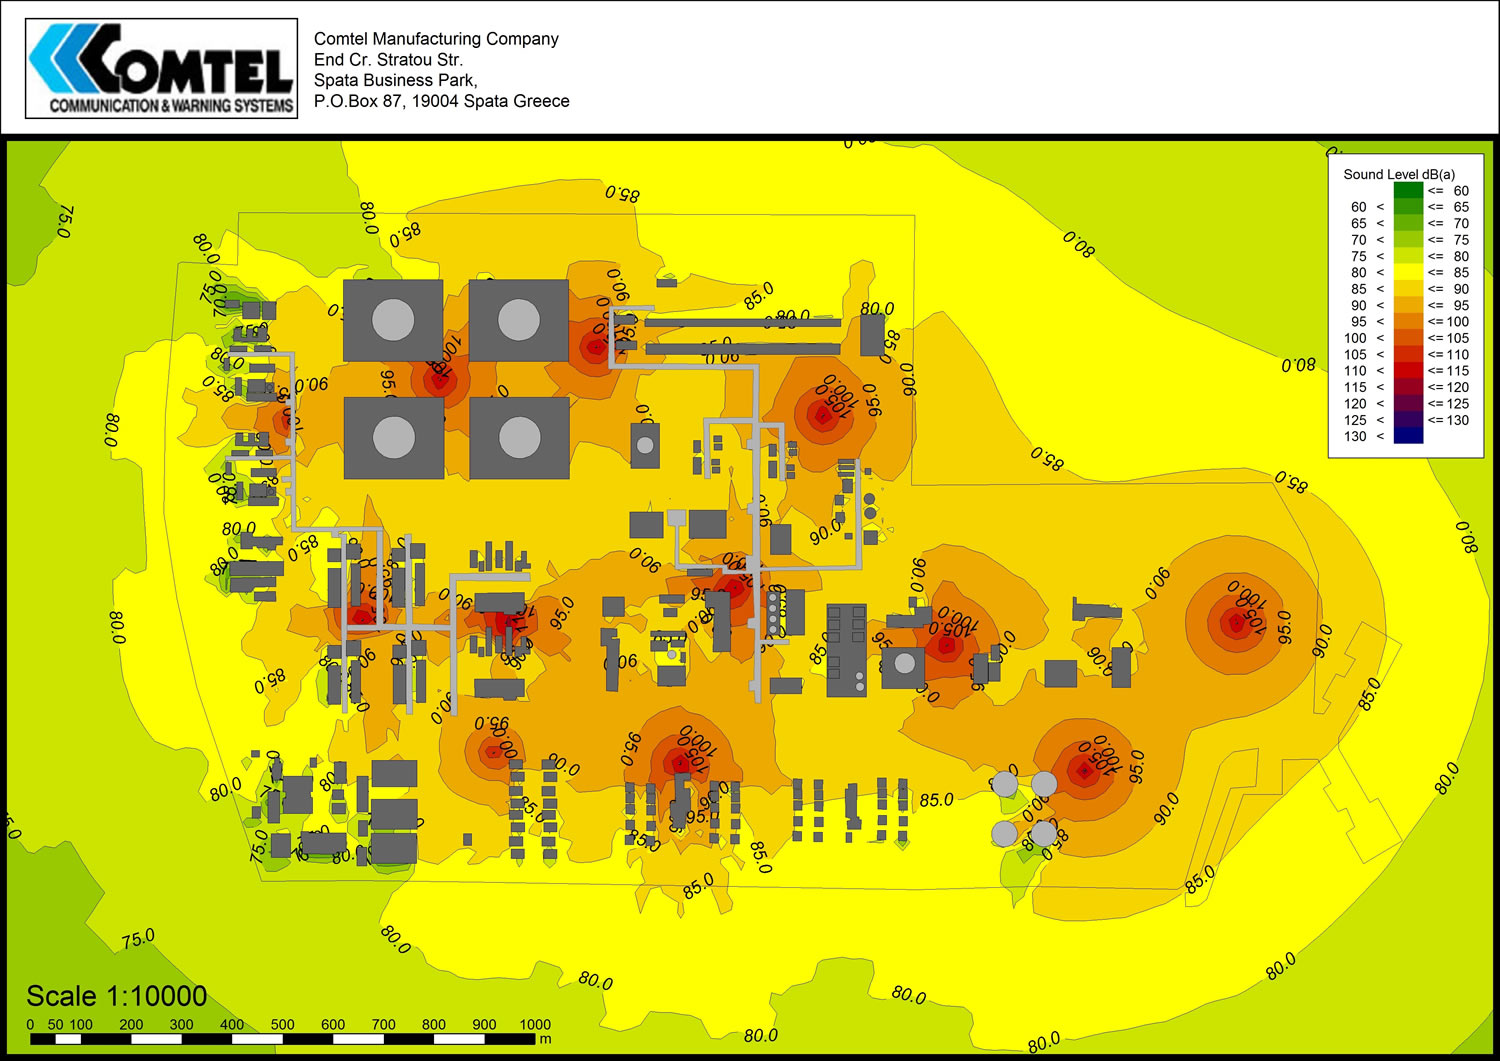 SoundPlan sound Simulation for Early Warning Systems 02